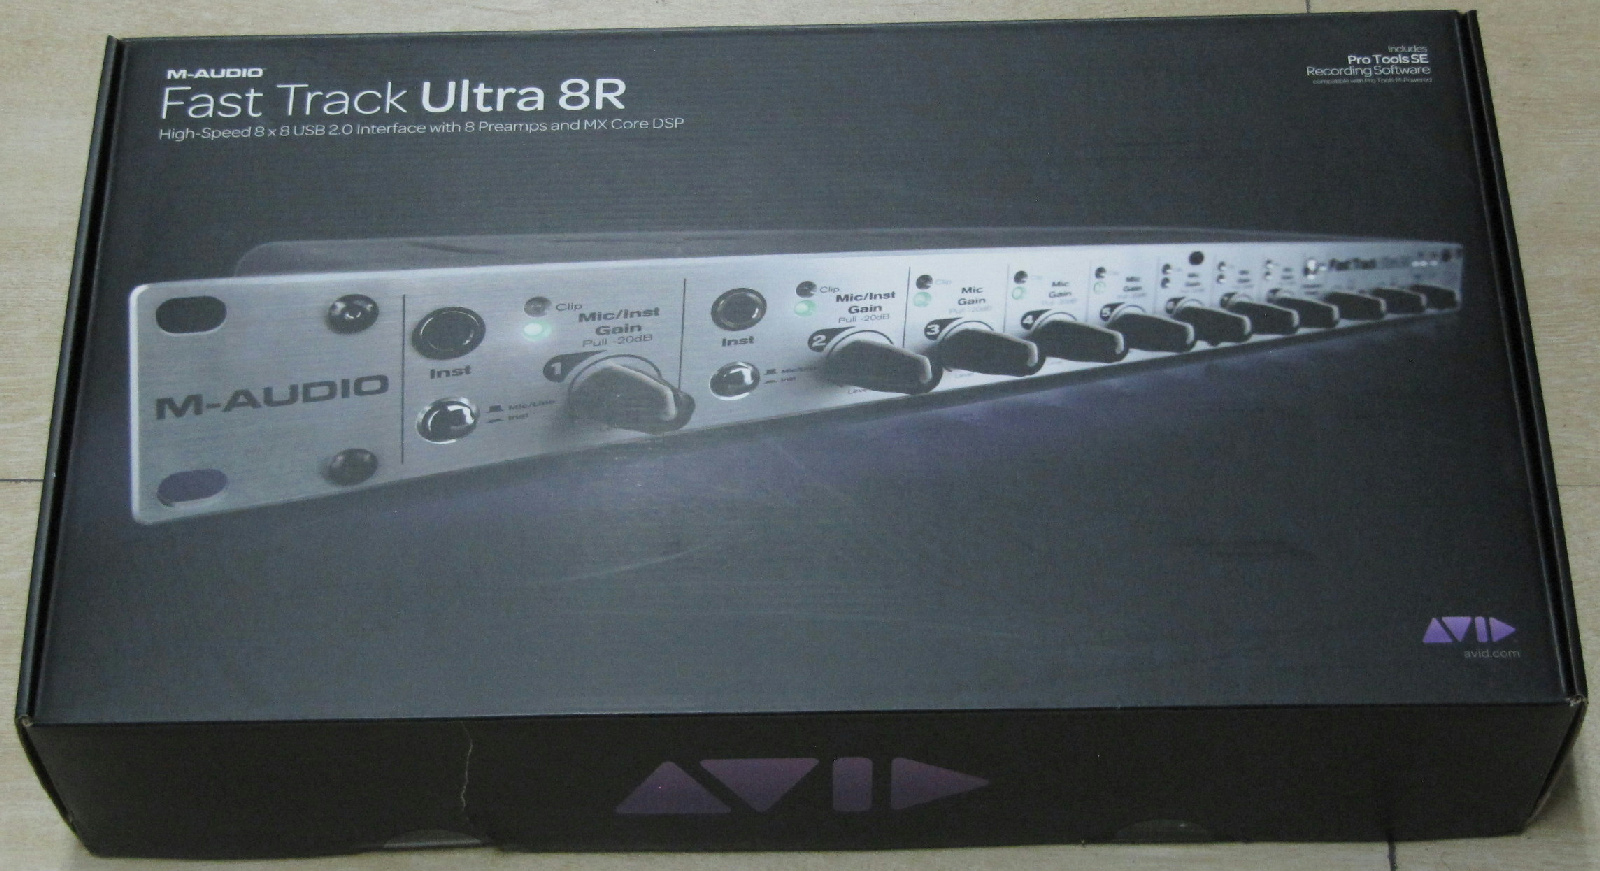 m audio fast track ultra 8r new in open packaging 612391440602 ebay. Black Bedroom Furniture Sets. Home Design Ideas